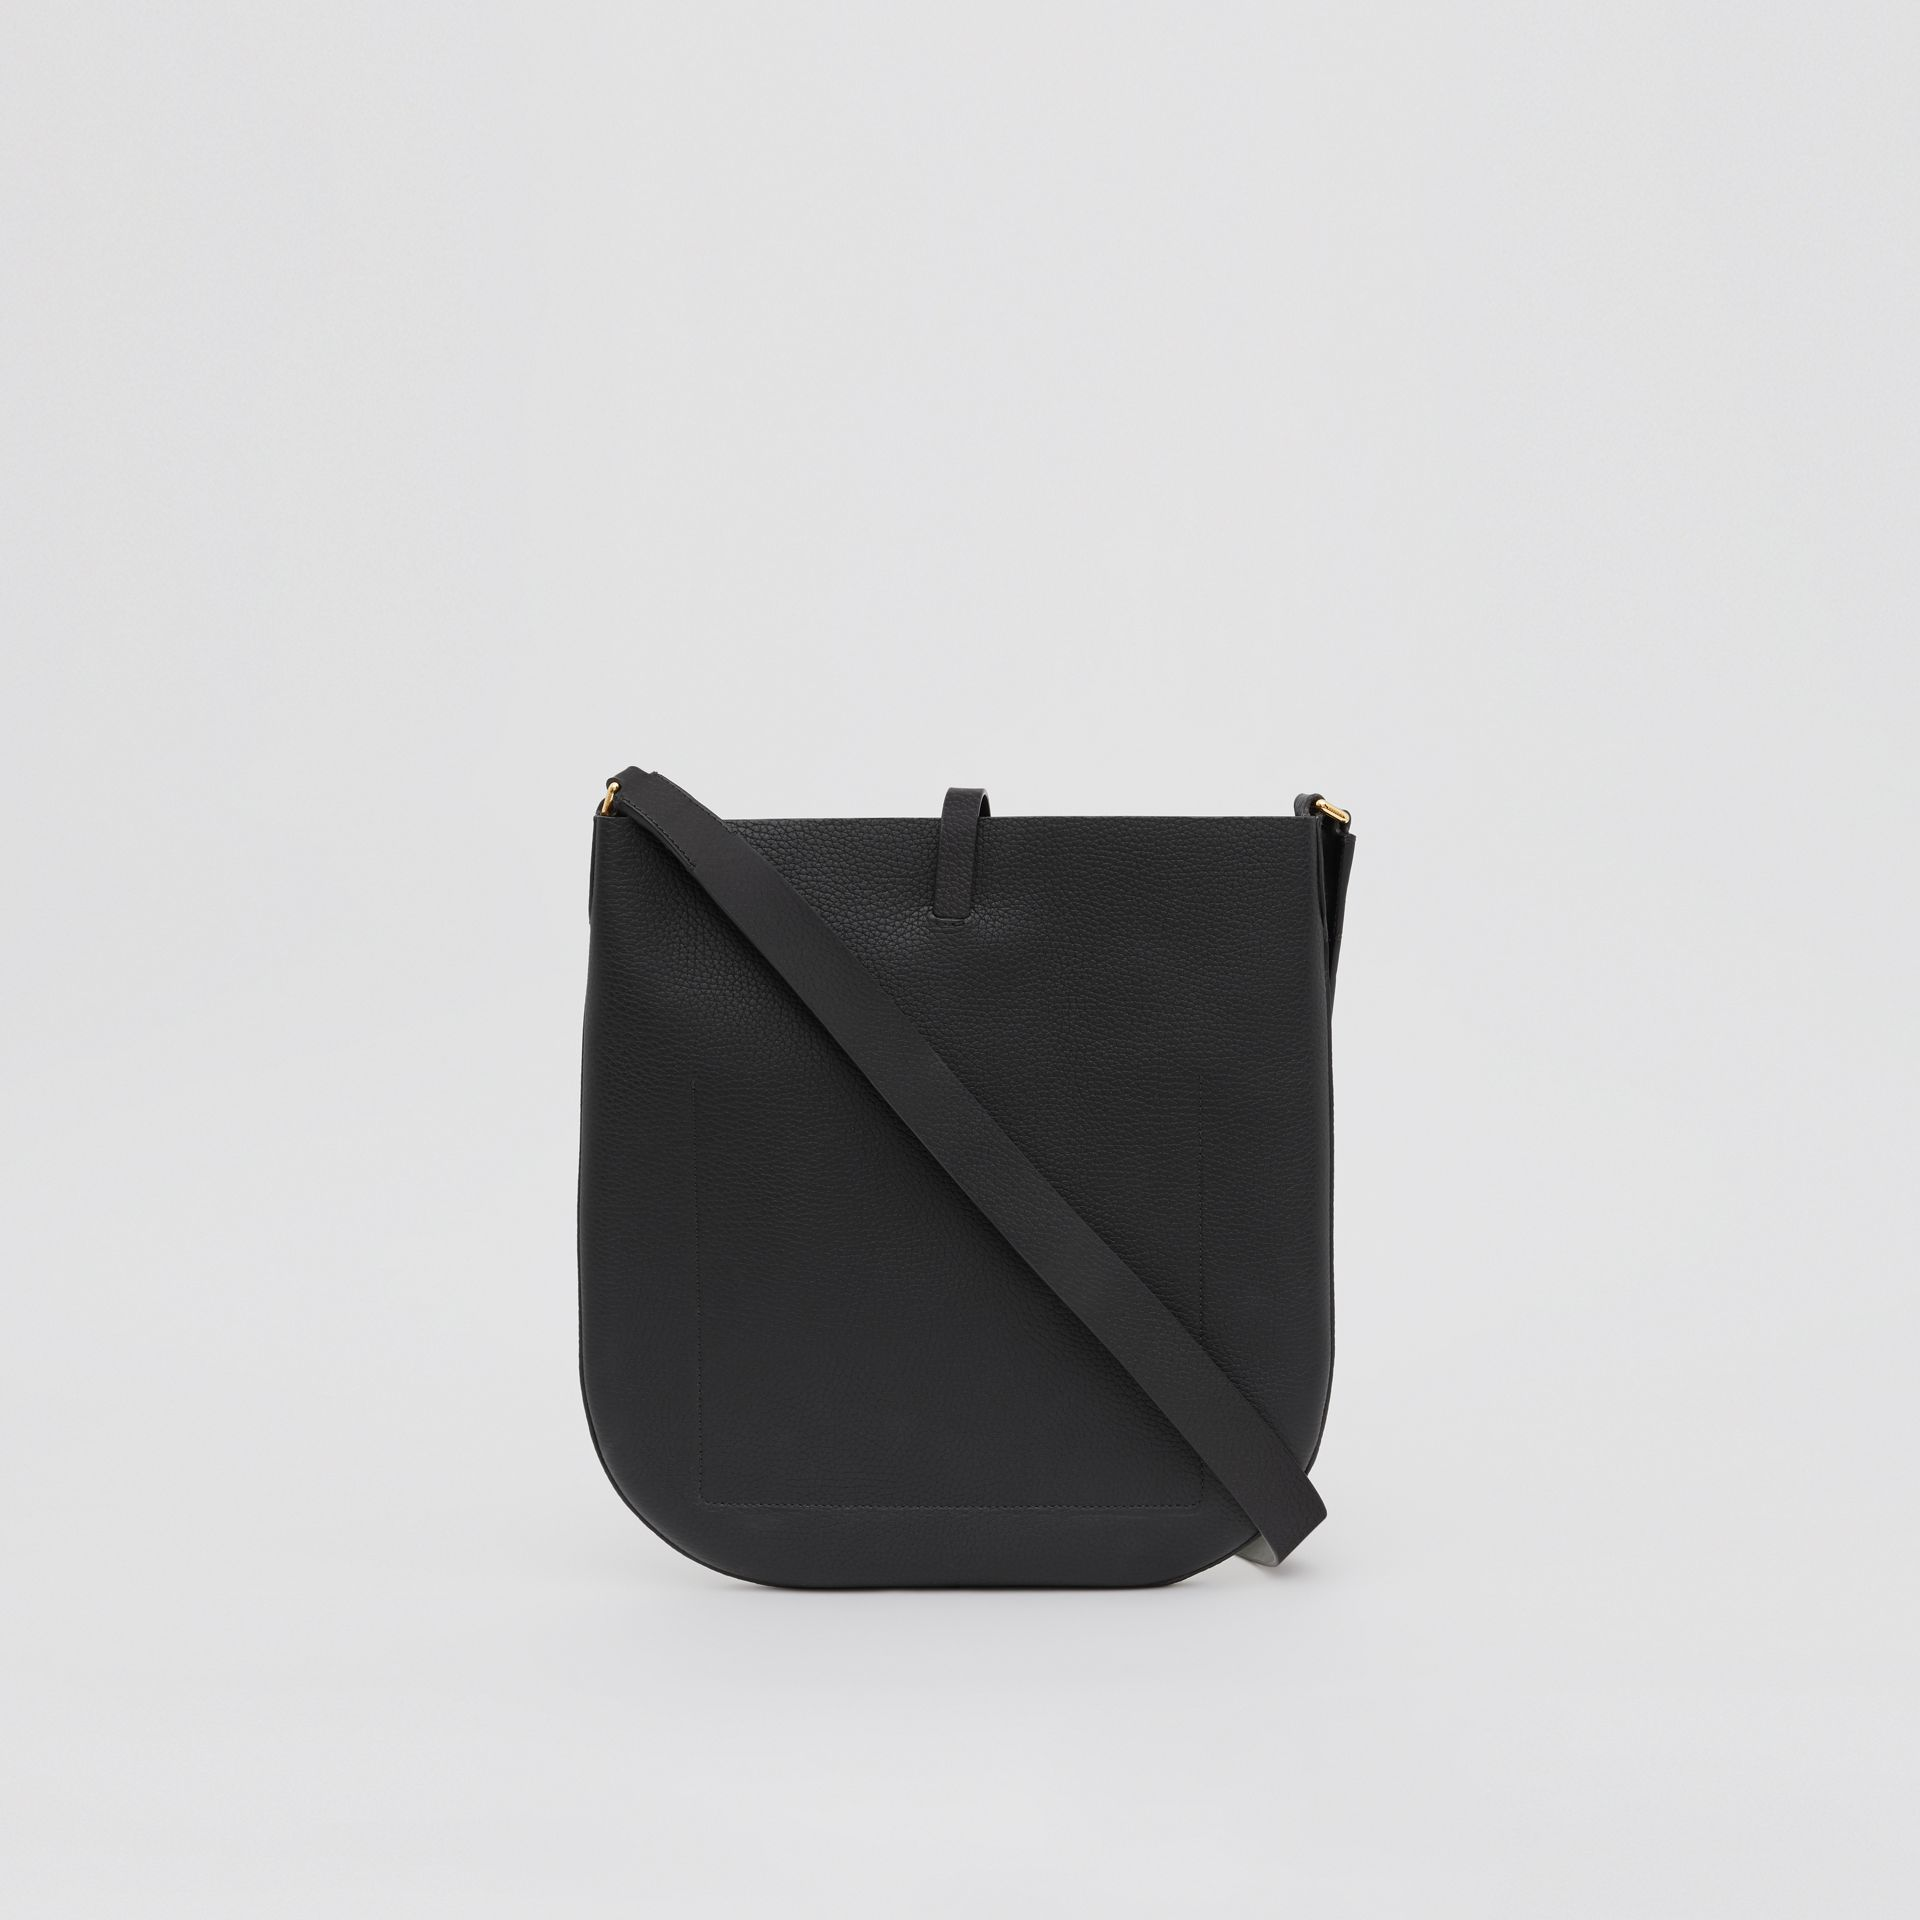 Grainy Leather Anne Bag in Black - Women   Burberry United Kingdom - gallery image 7